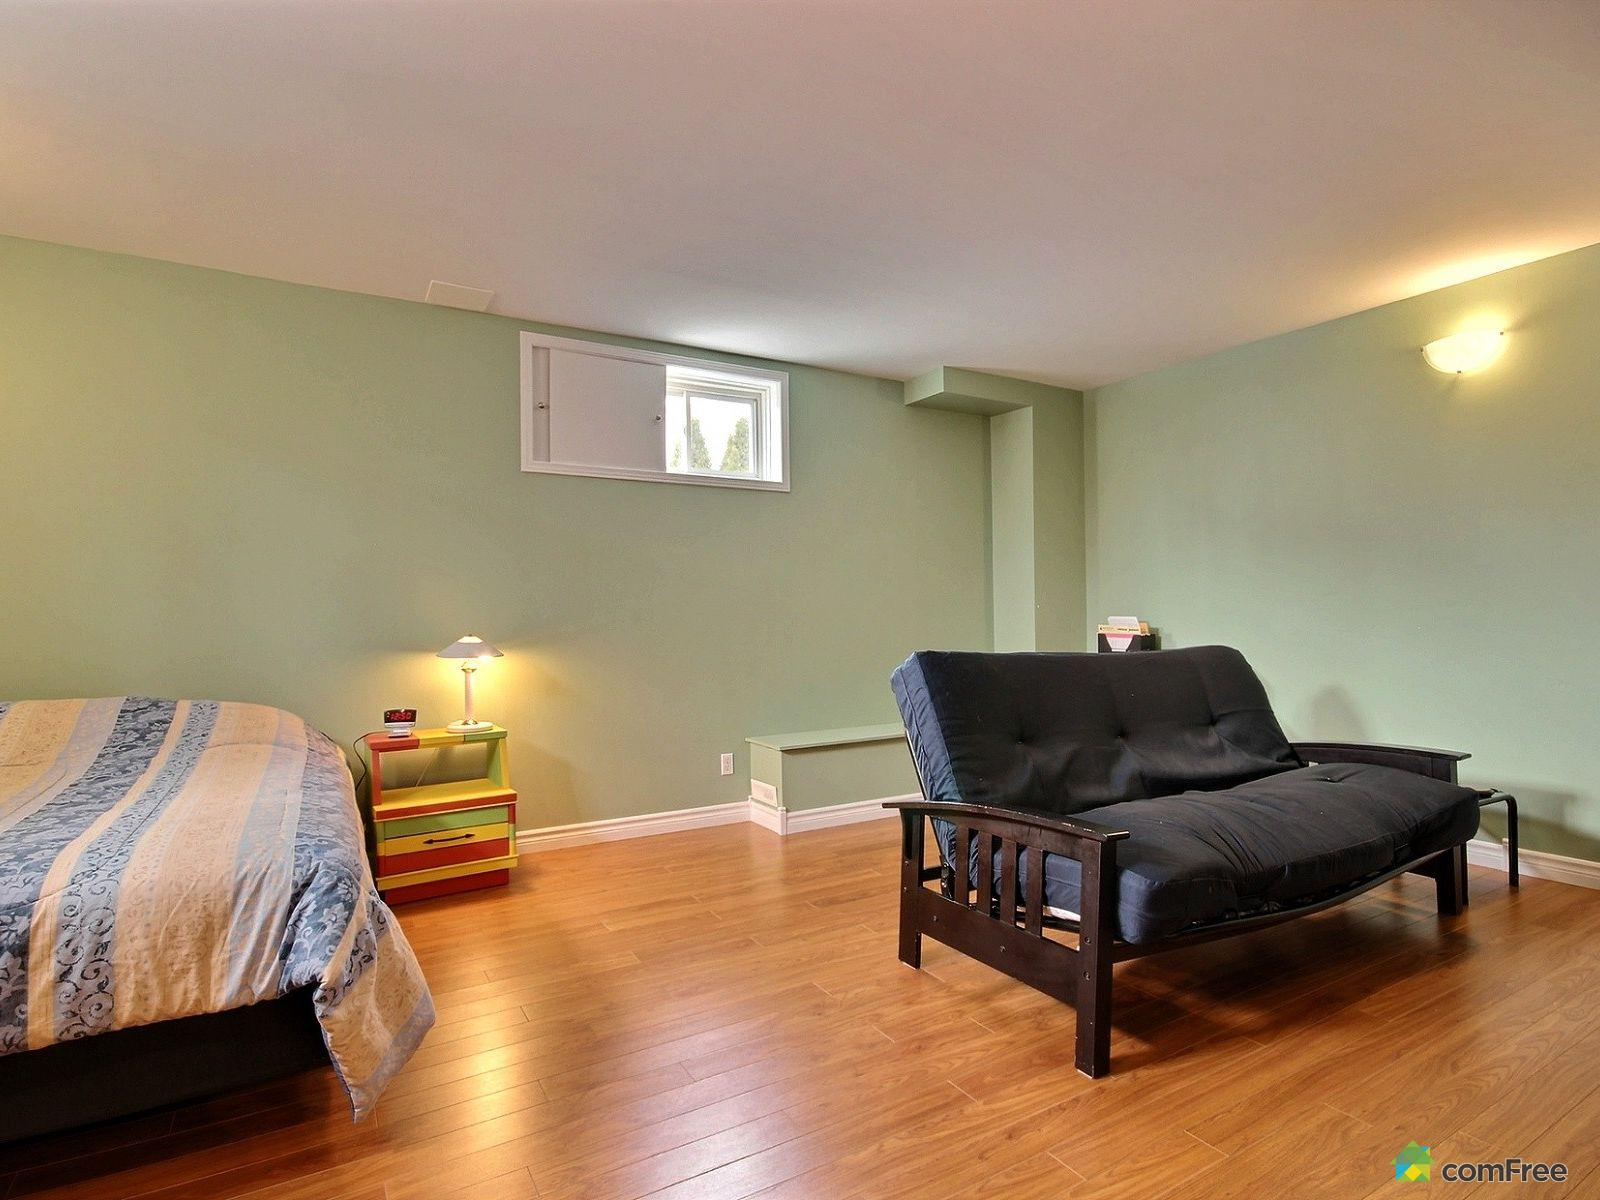 basement-bedroom-1-home-for-sale-orleans-ontario-1600-7136259